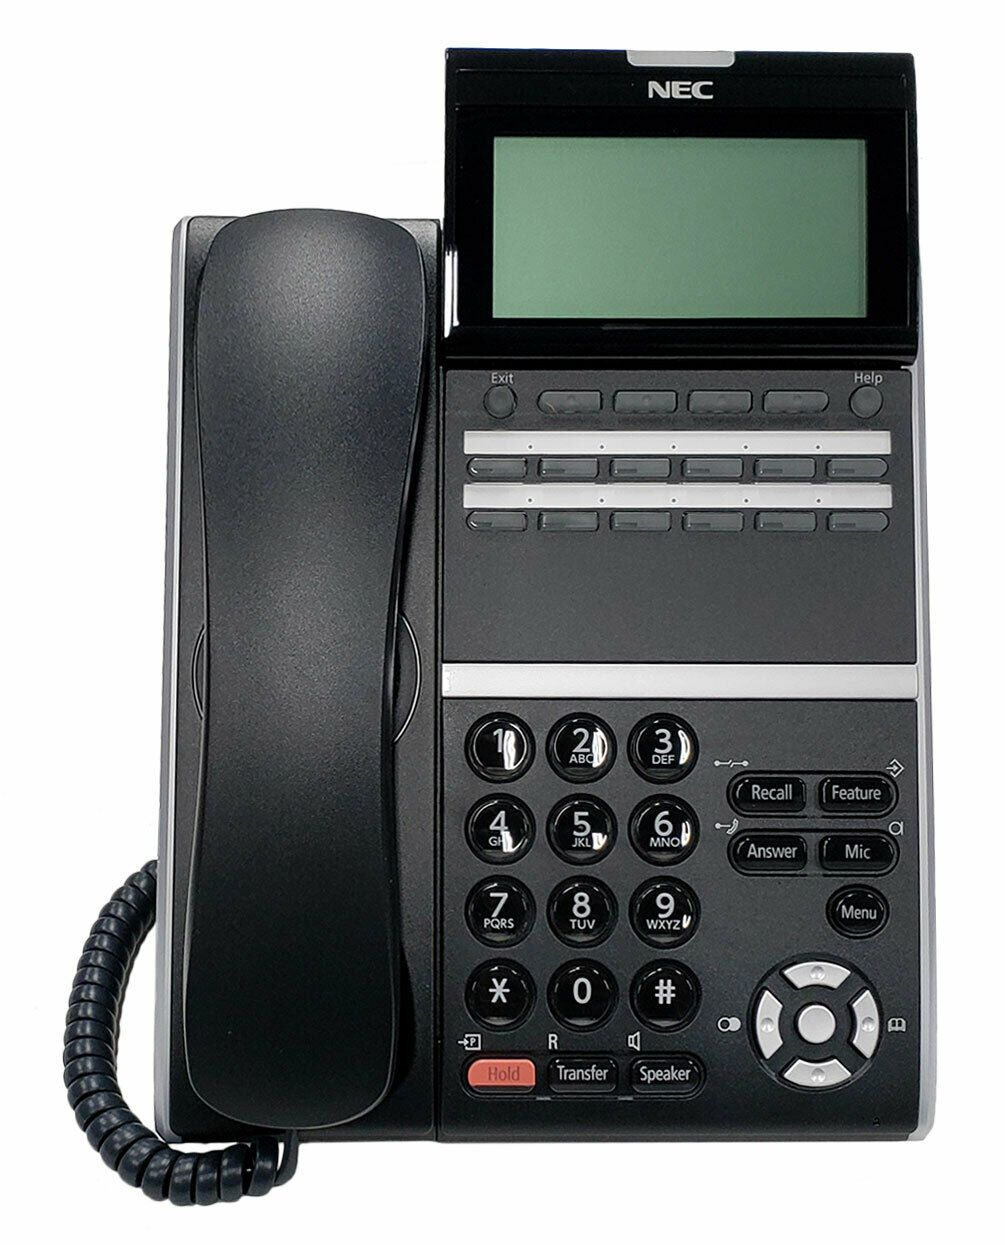 NEC ITZ-12D-3 IP Phone Black (DT830)